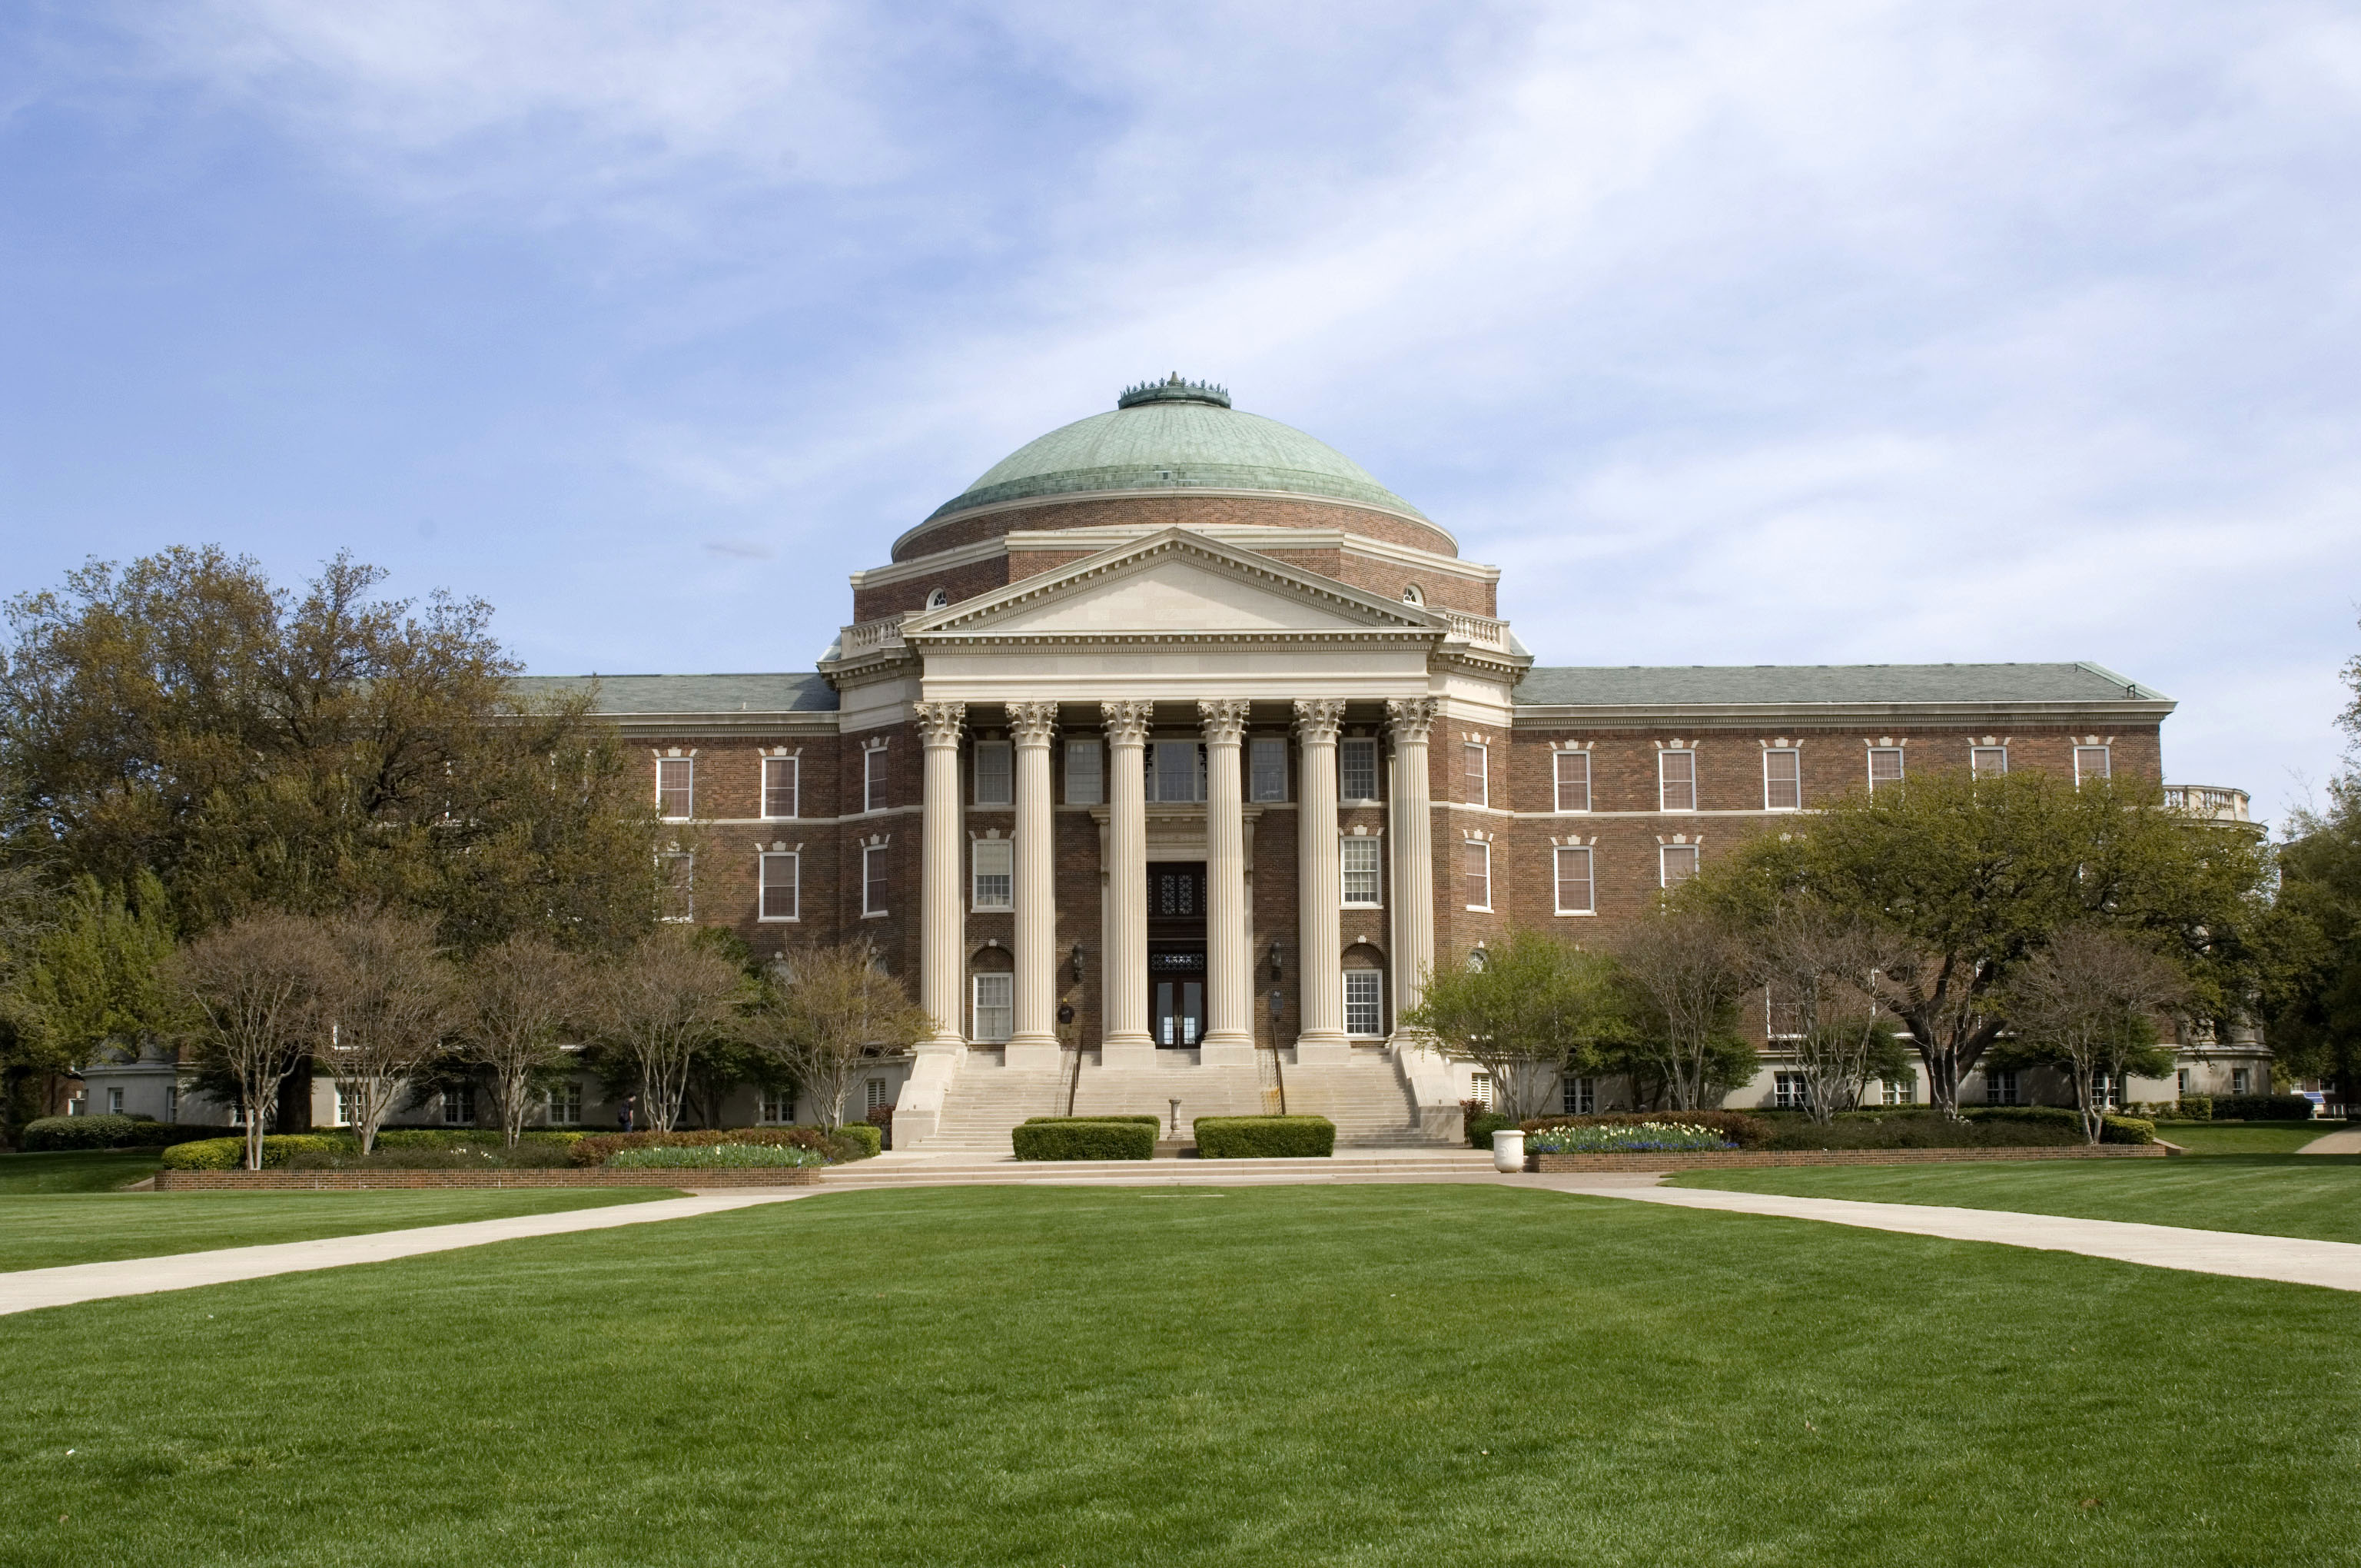 Dallas Hall at Southern Methodist University